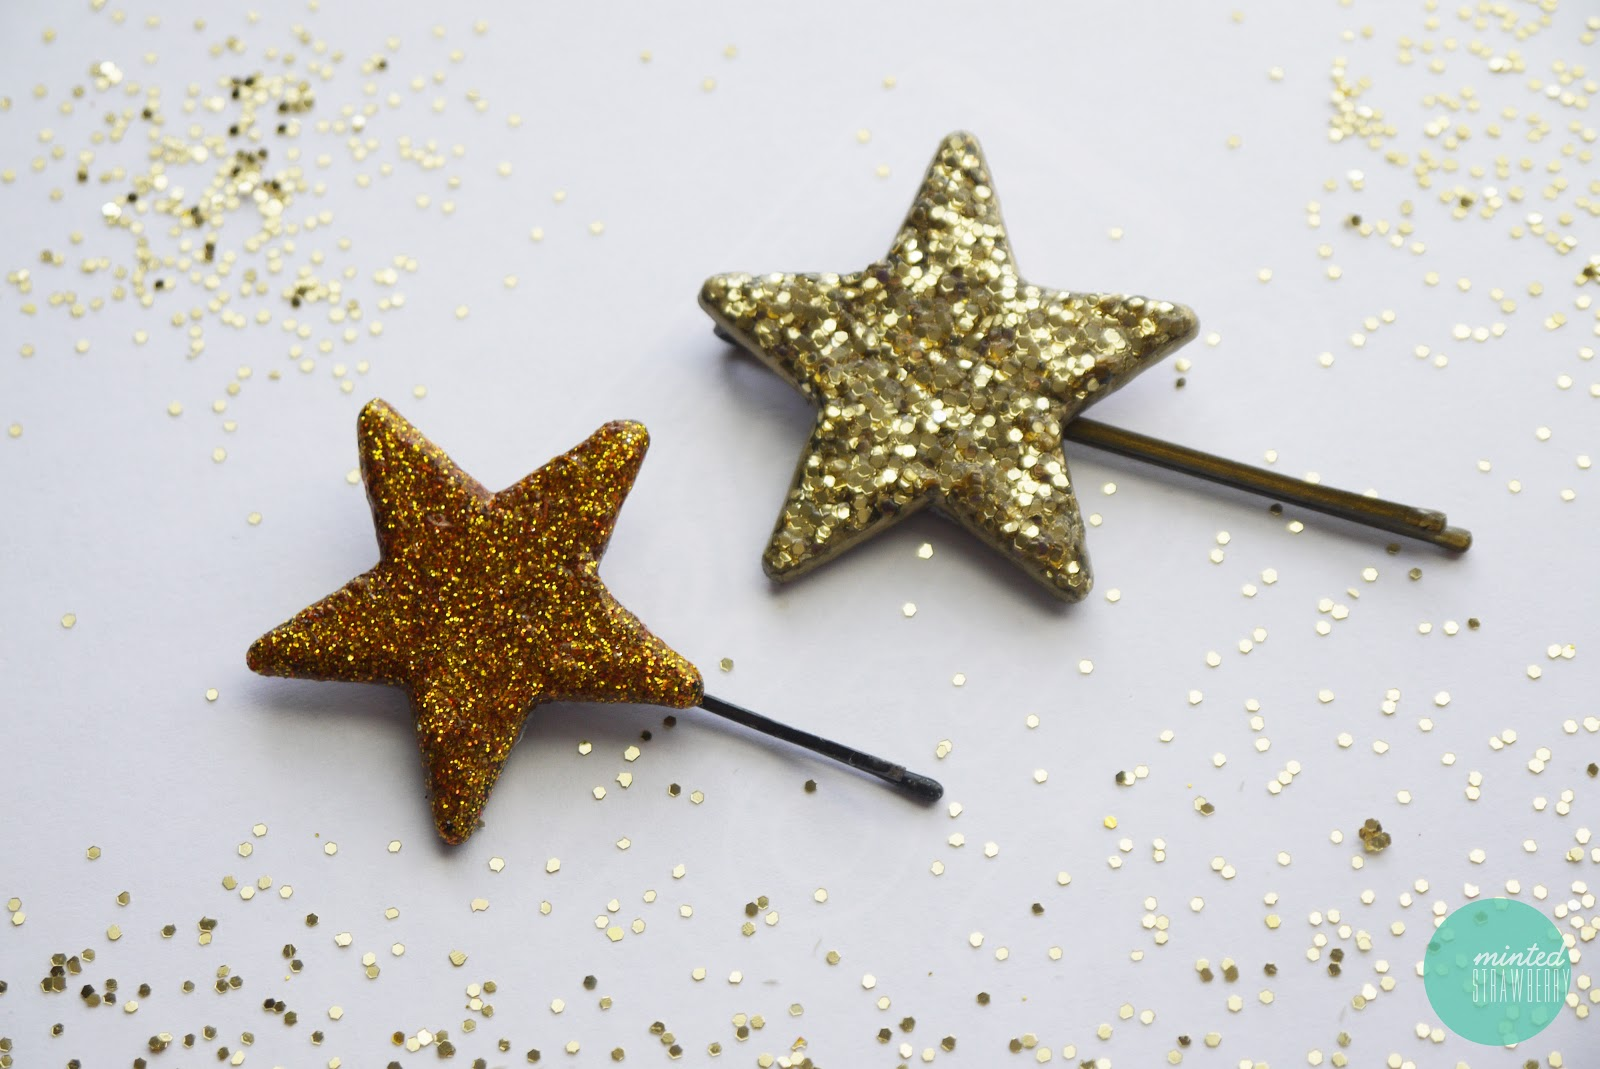 DIY: Glitterized Star Hairpins - Minted Strawberry